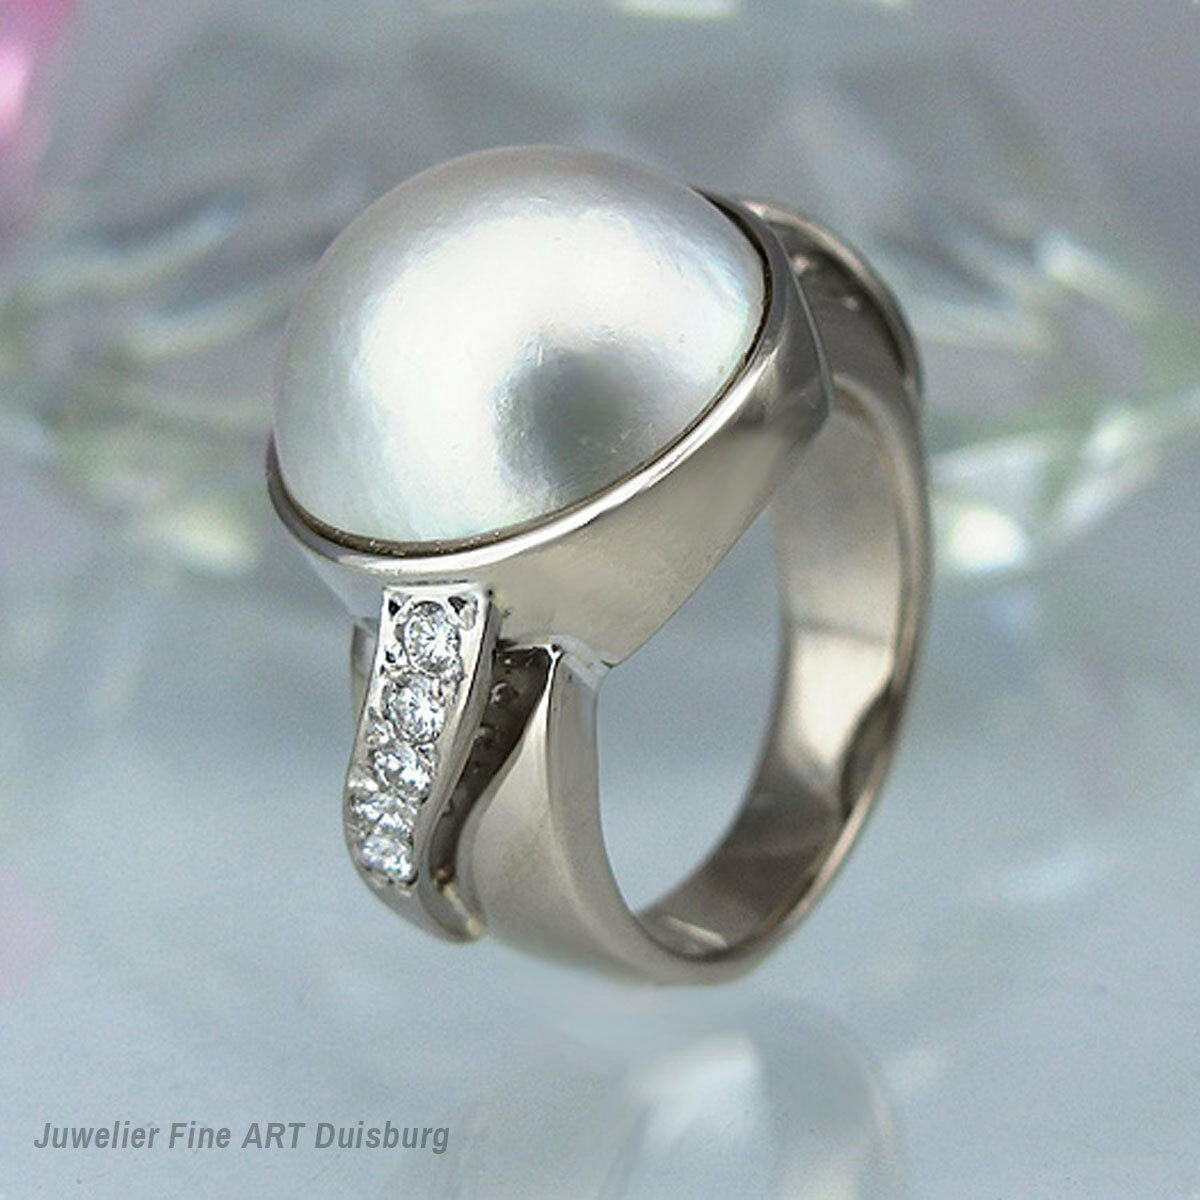 Ring in 585 - whitegold mit 1 Mabeperle  und 10 Diamanten ca 0,20 ct. TW VSI